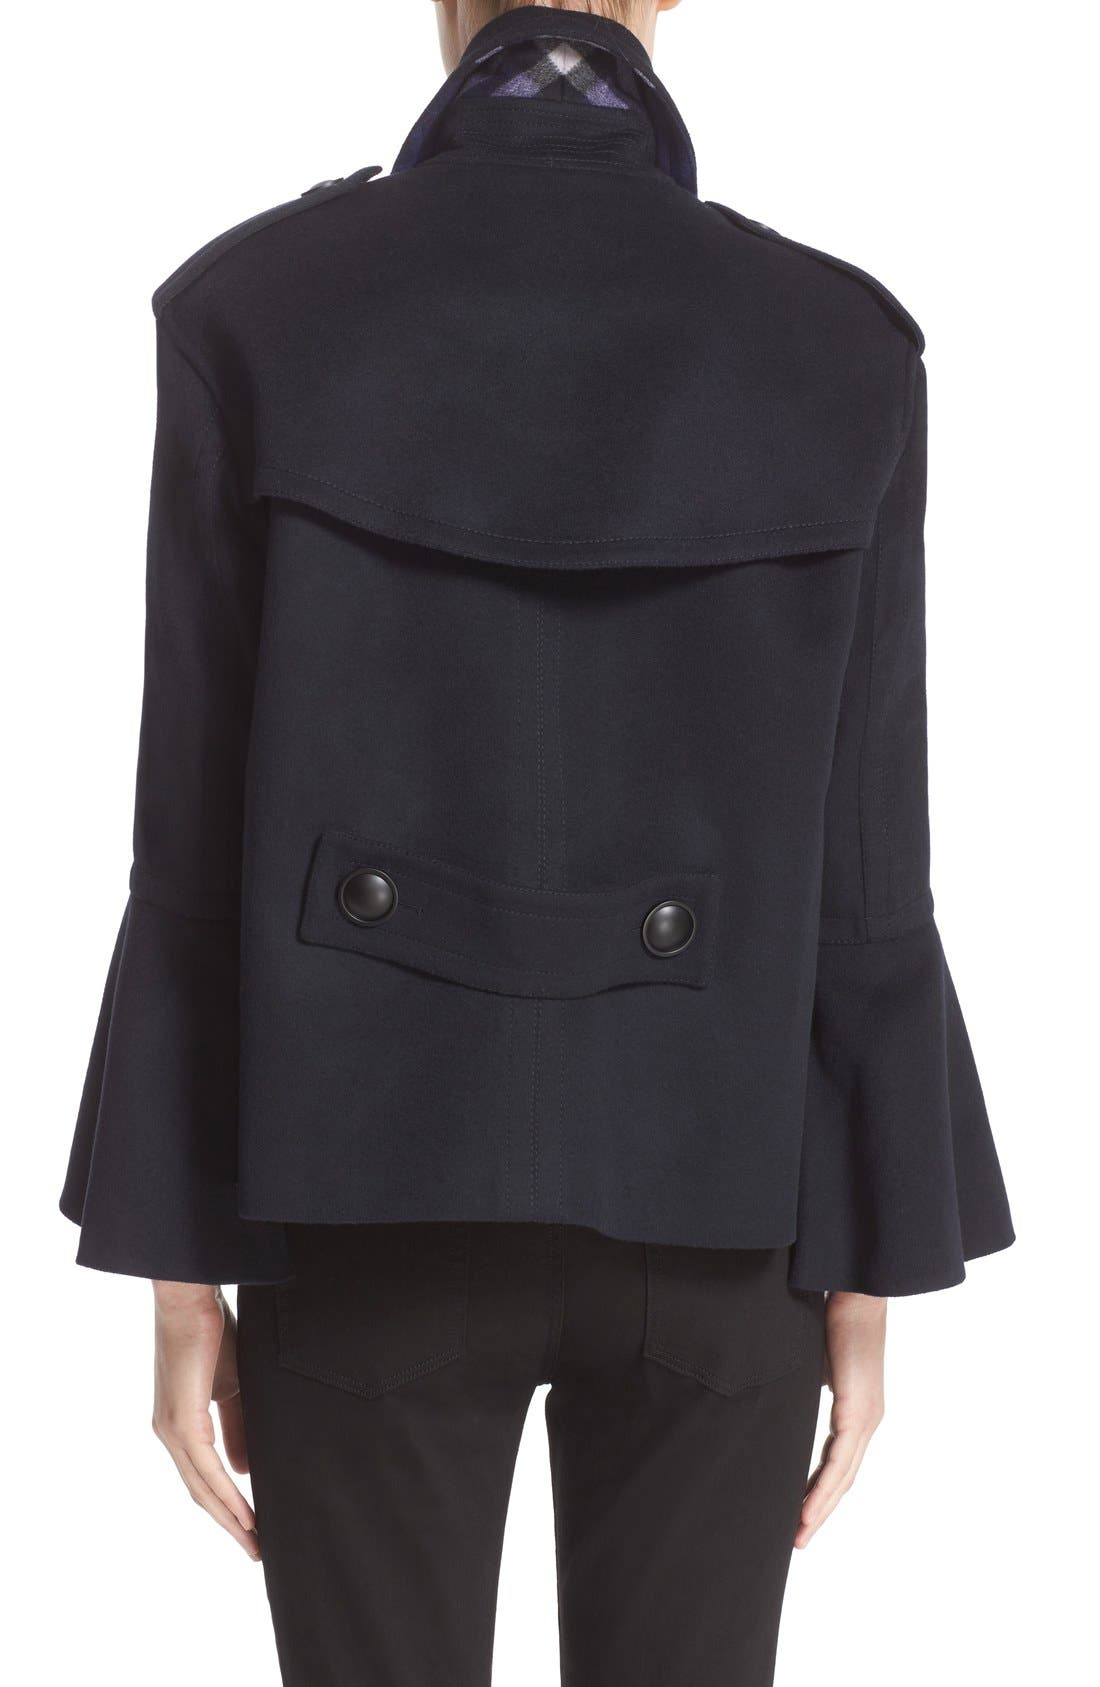 BURBERRY,                             Juliette Townhill Double Breasted Peacoat,                             Alternate thumbnail 4, color,                             410